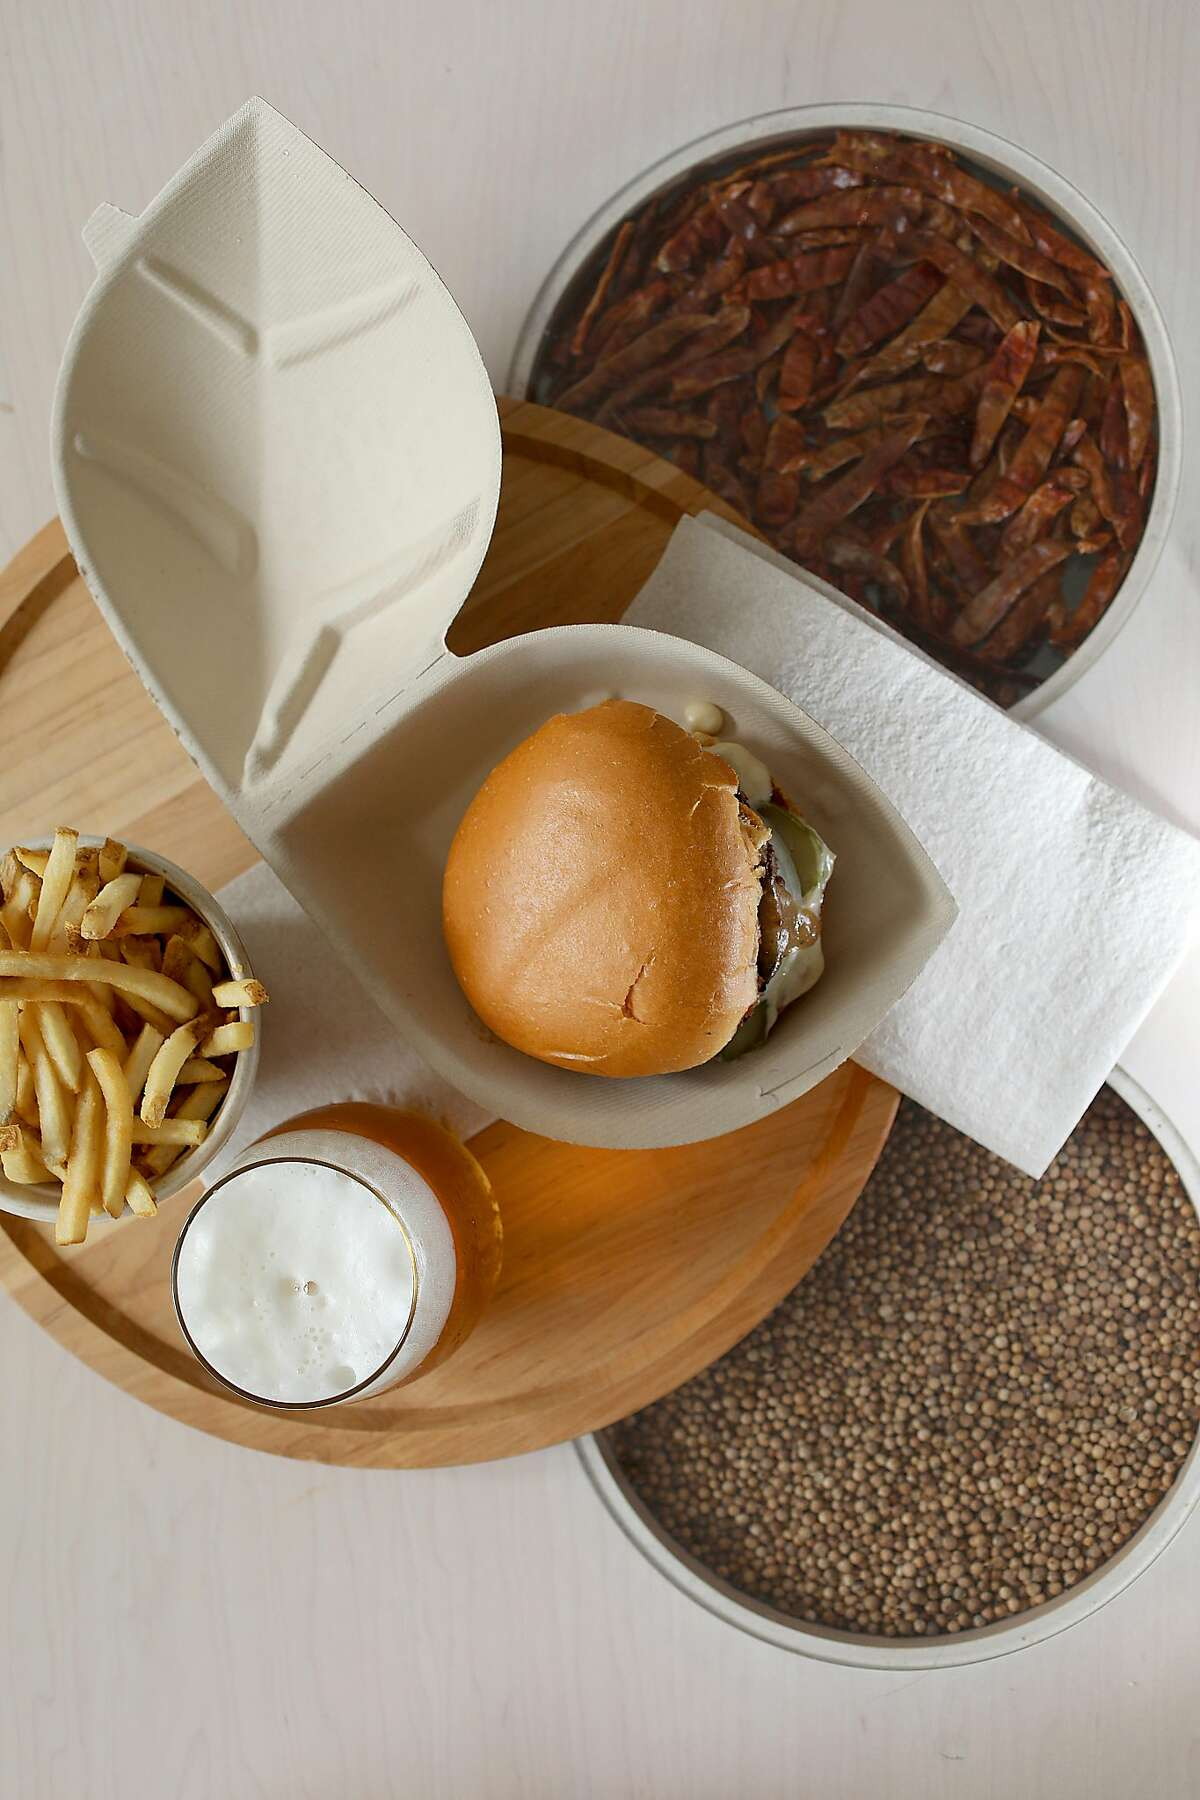 A Tumami Burger--creamy smoked oyster aioli, shiitake mushroom sauce, pickles, and onion--with fries and a beer on tap served at the Creator, the first robot-made burger restaurant seen on Wednesday, March 6, 2019, in San Francisco, Calif.